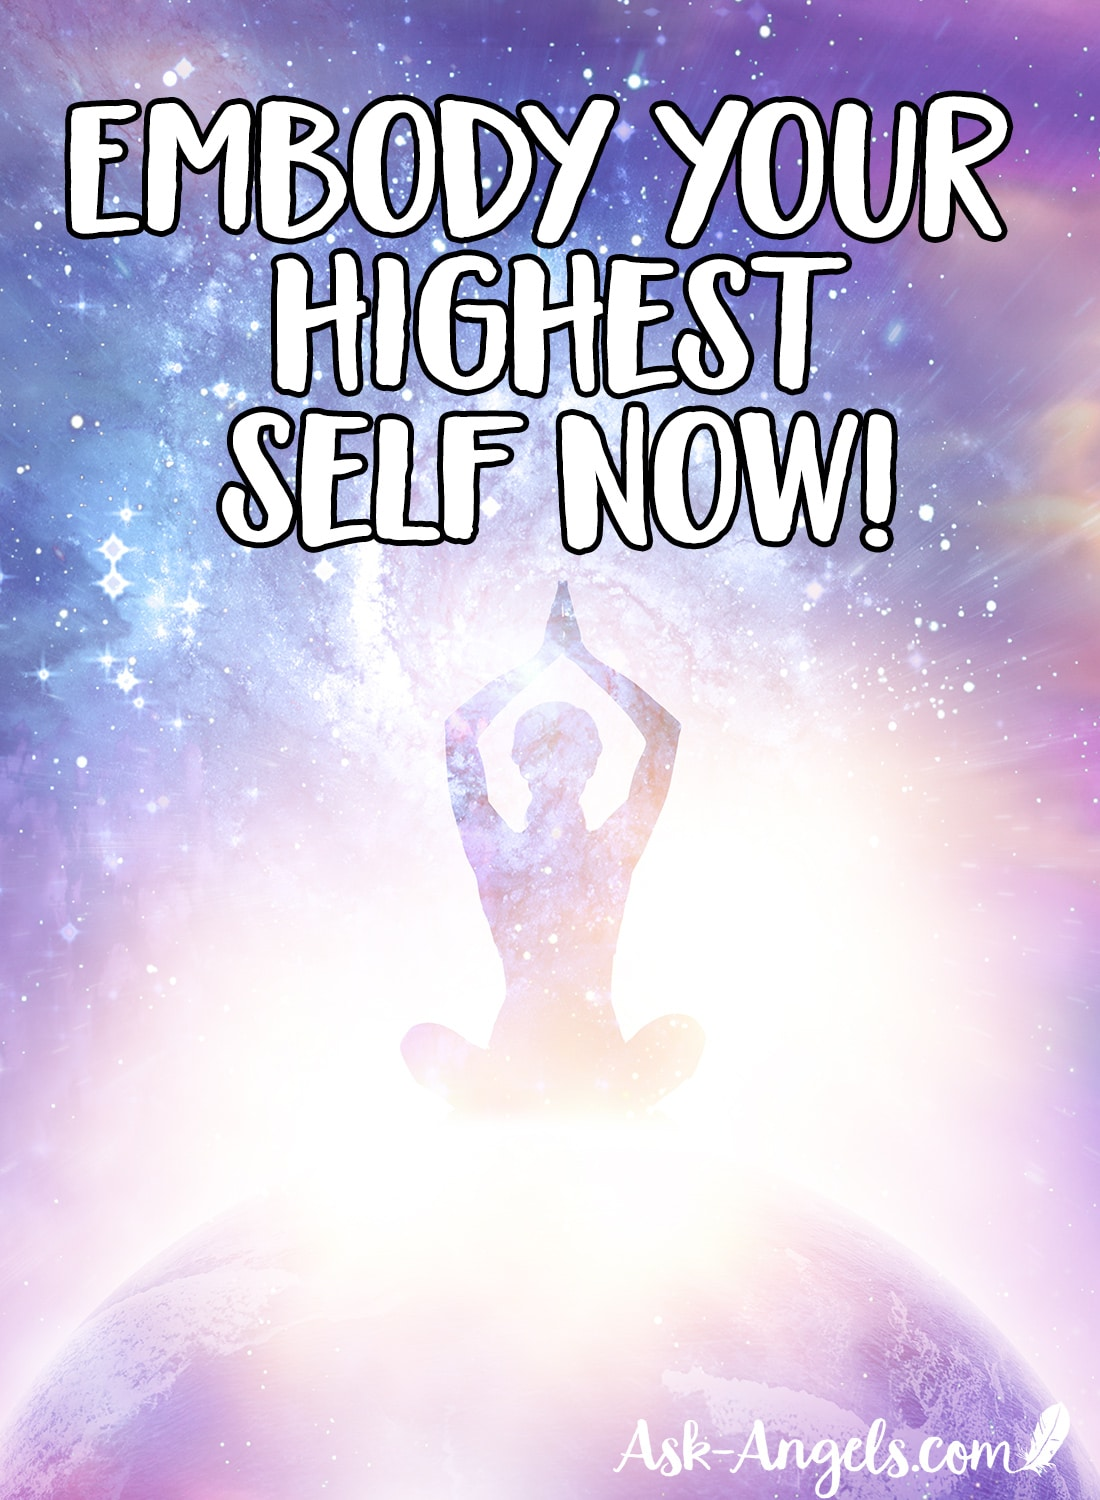 Embody Your Highest Self Now